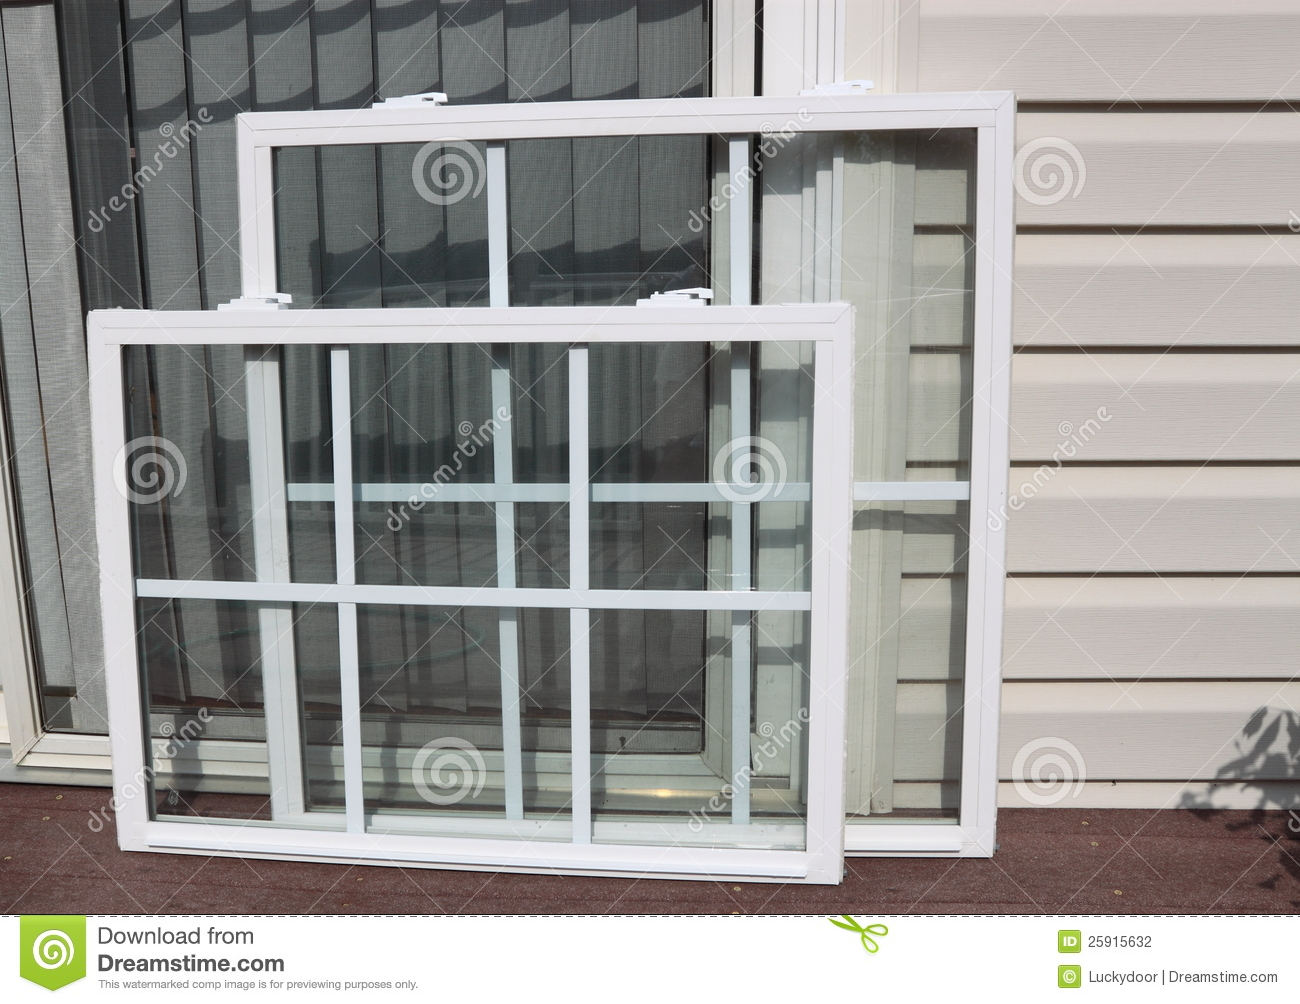 Vinyl windows how to install home windows vinyl for Vinyl windows company